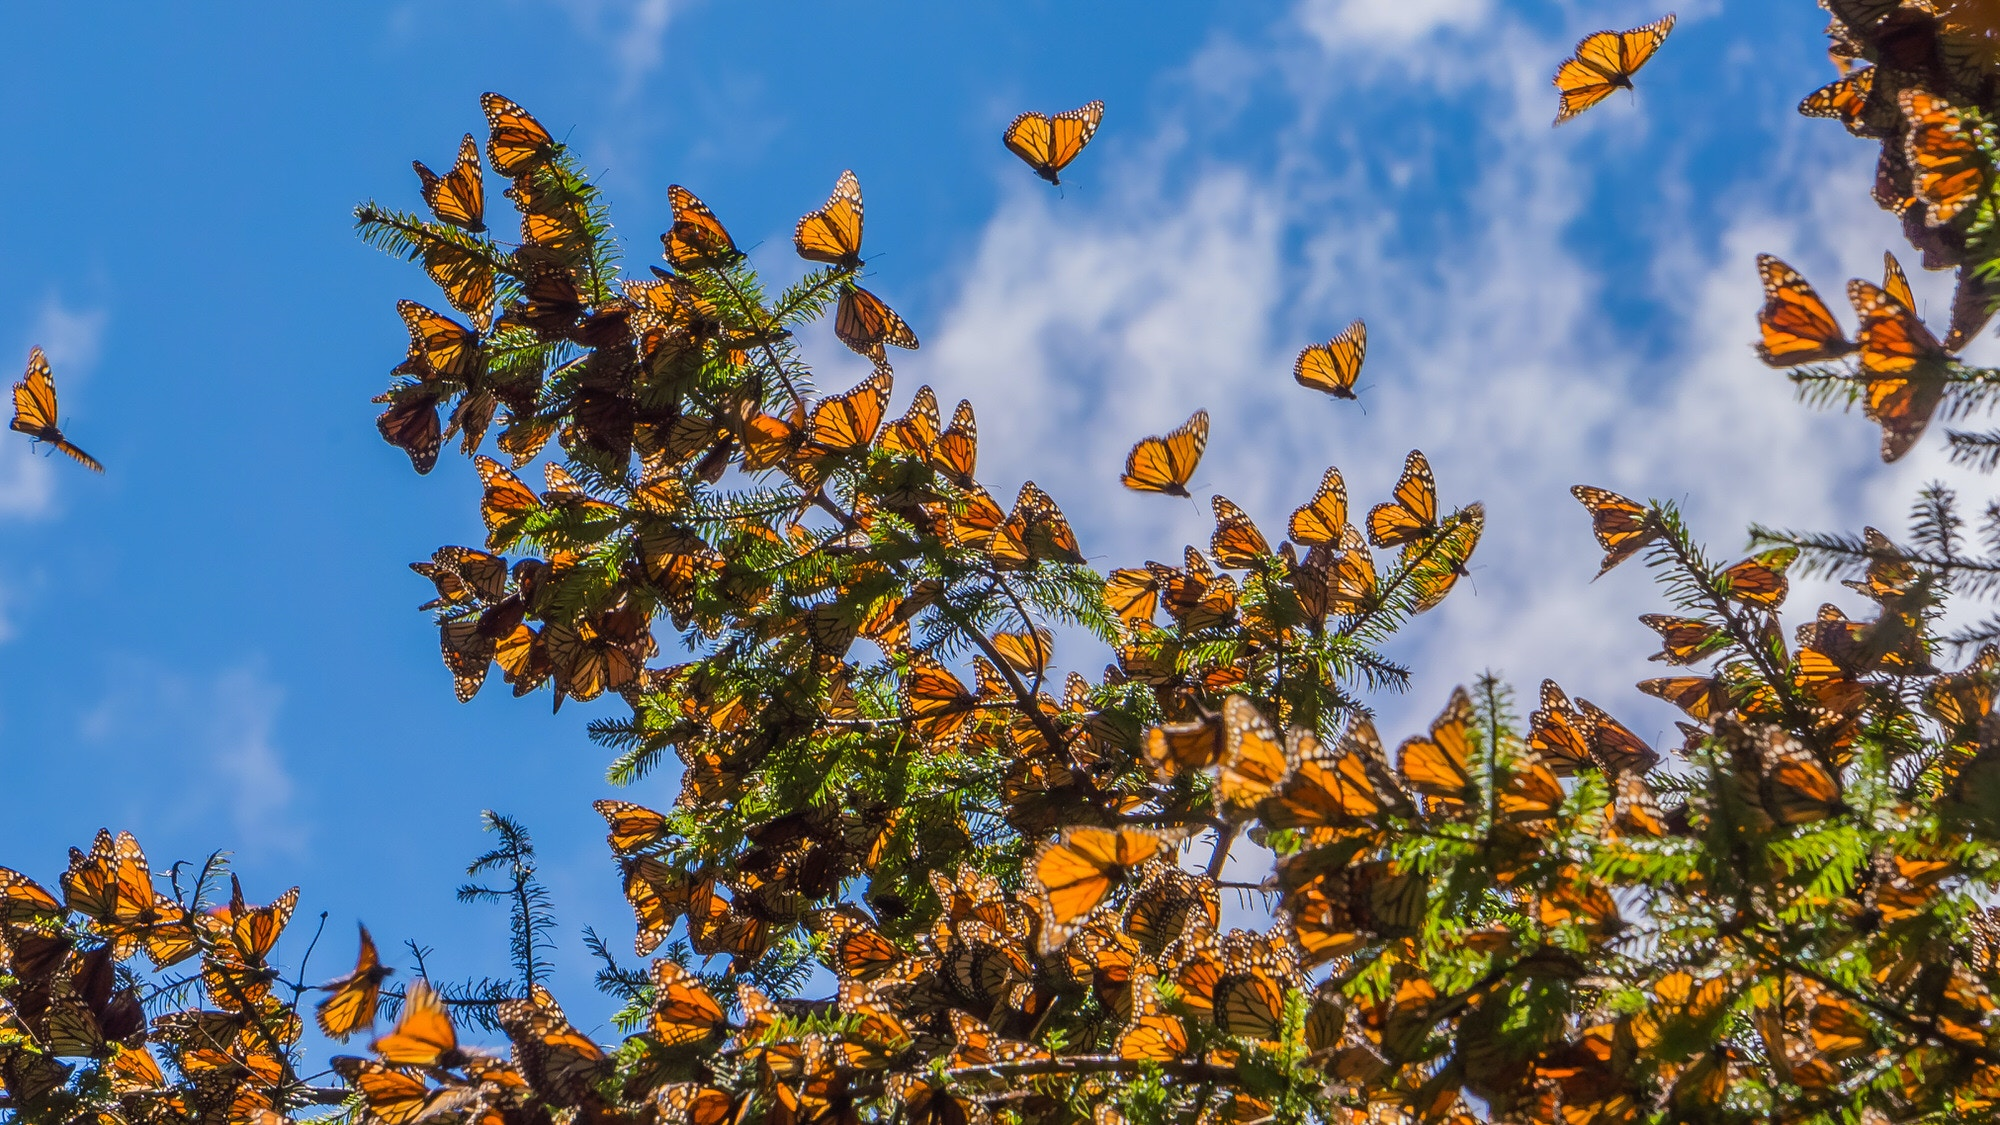 Many Monarch butterflies on a tree branch, with blue sky beyond